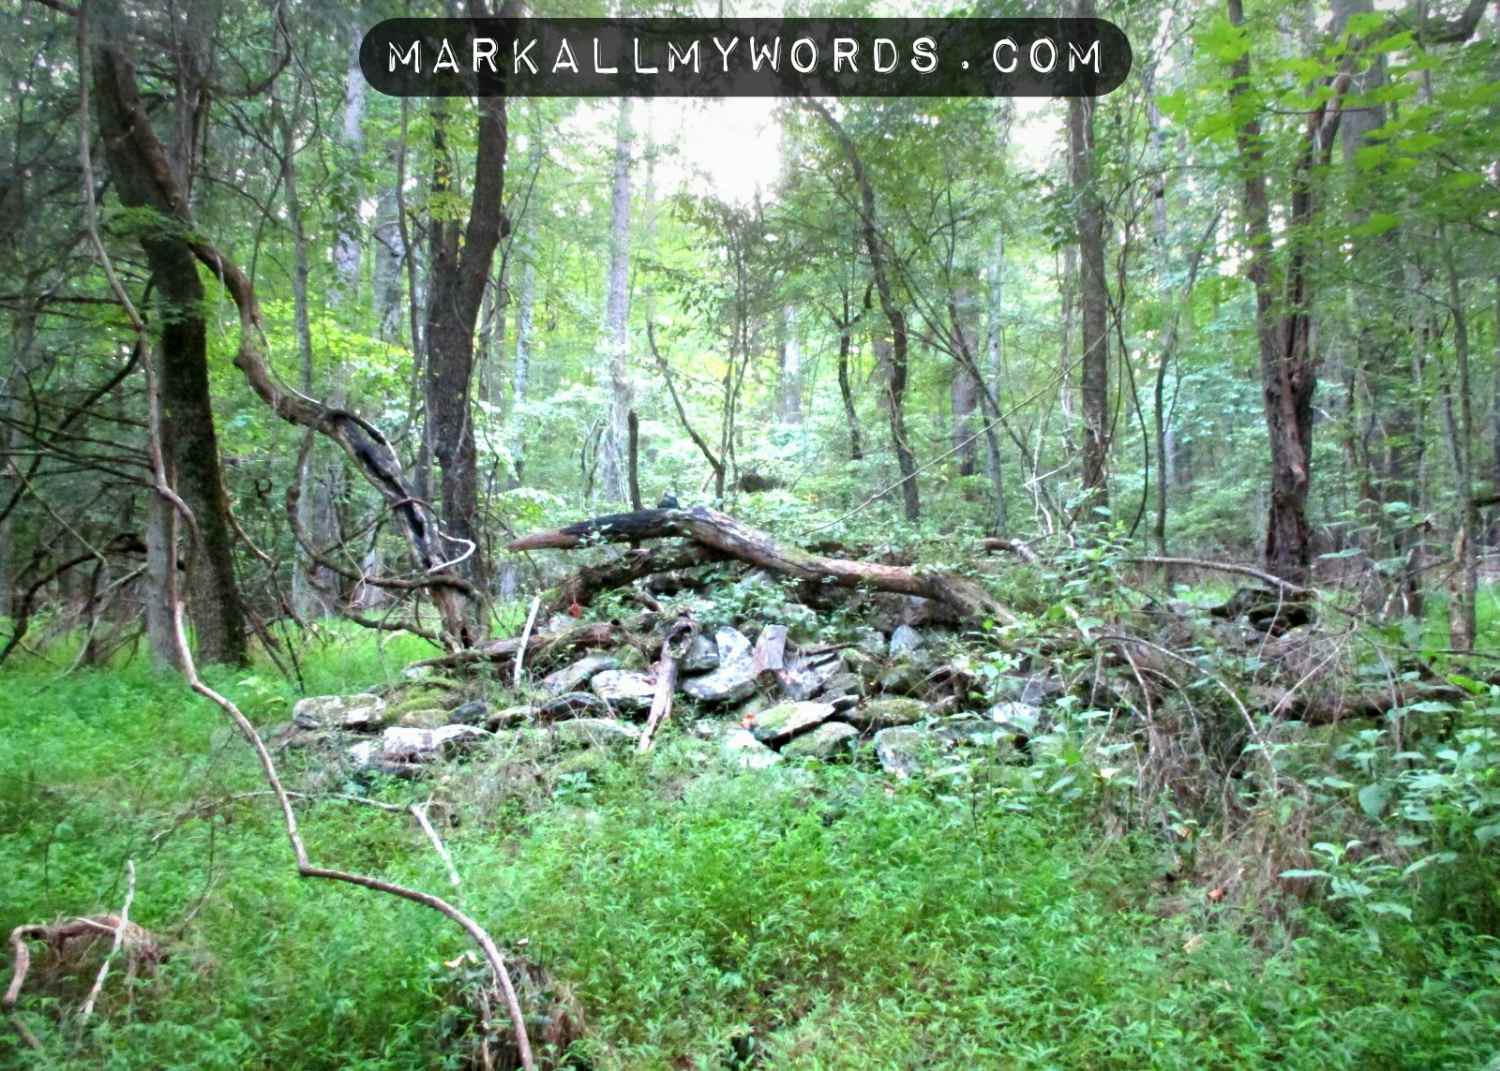 Pile of rubble, most likely from Dunnagan family home